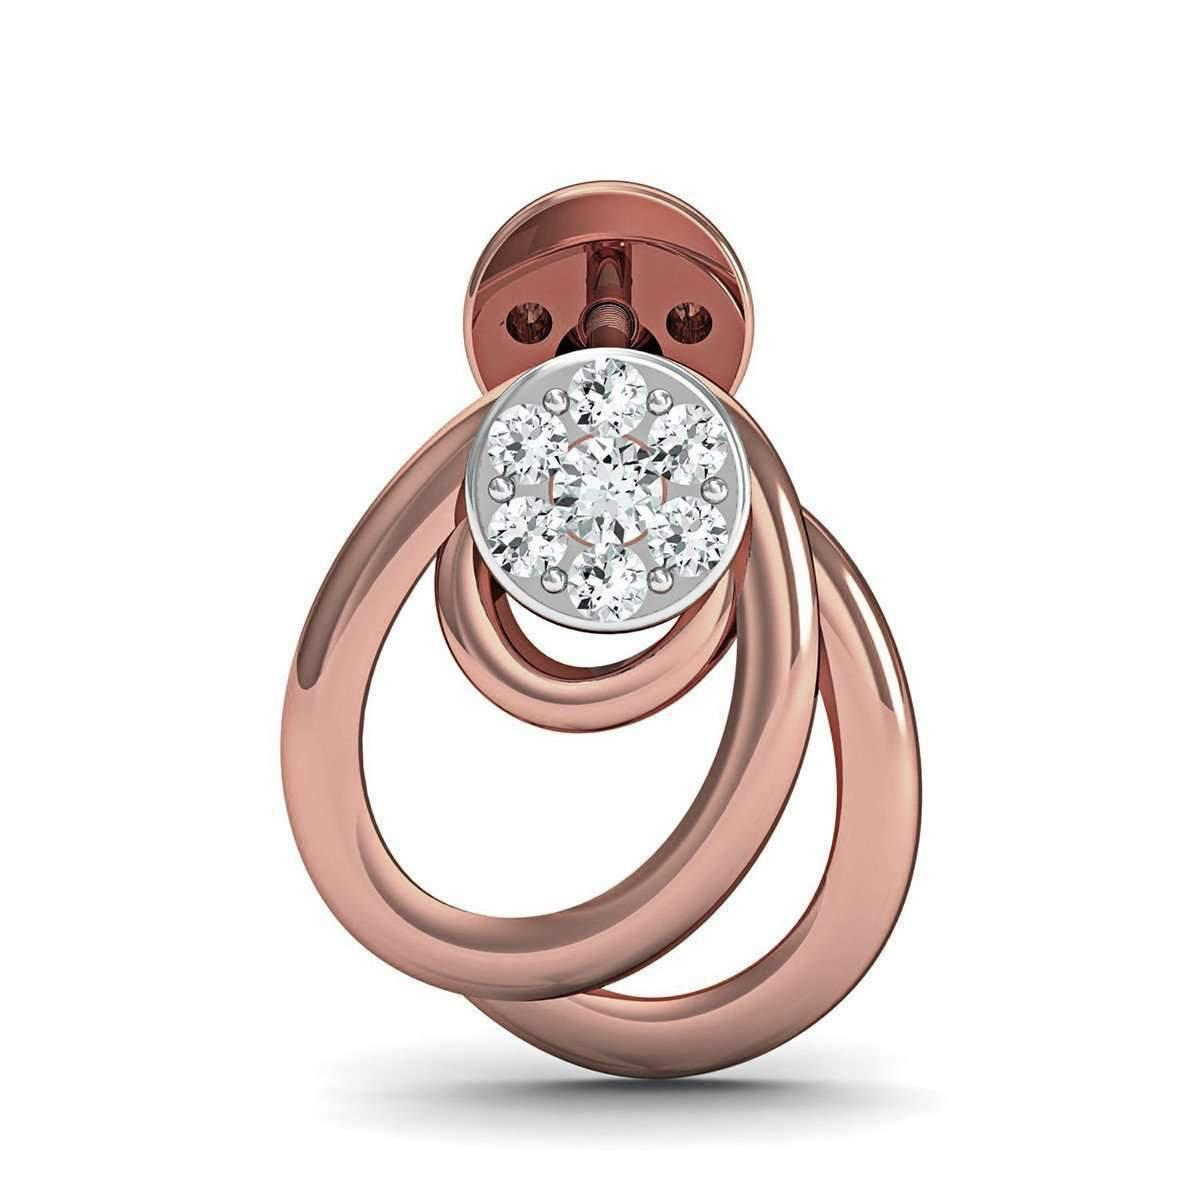 Diamoire Jewels 18kt Rose Gold Earrings with 14 Premium Quality Diamonds Inspired by Nature ussNI